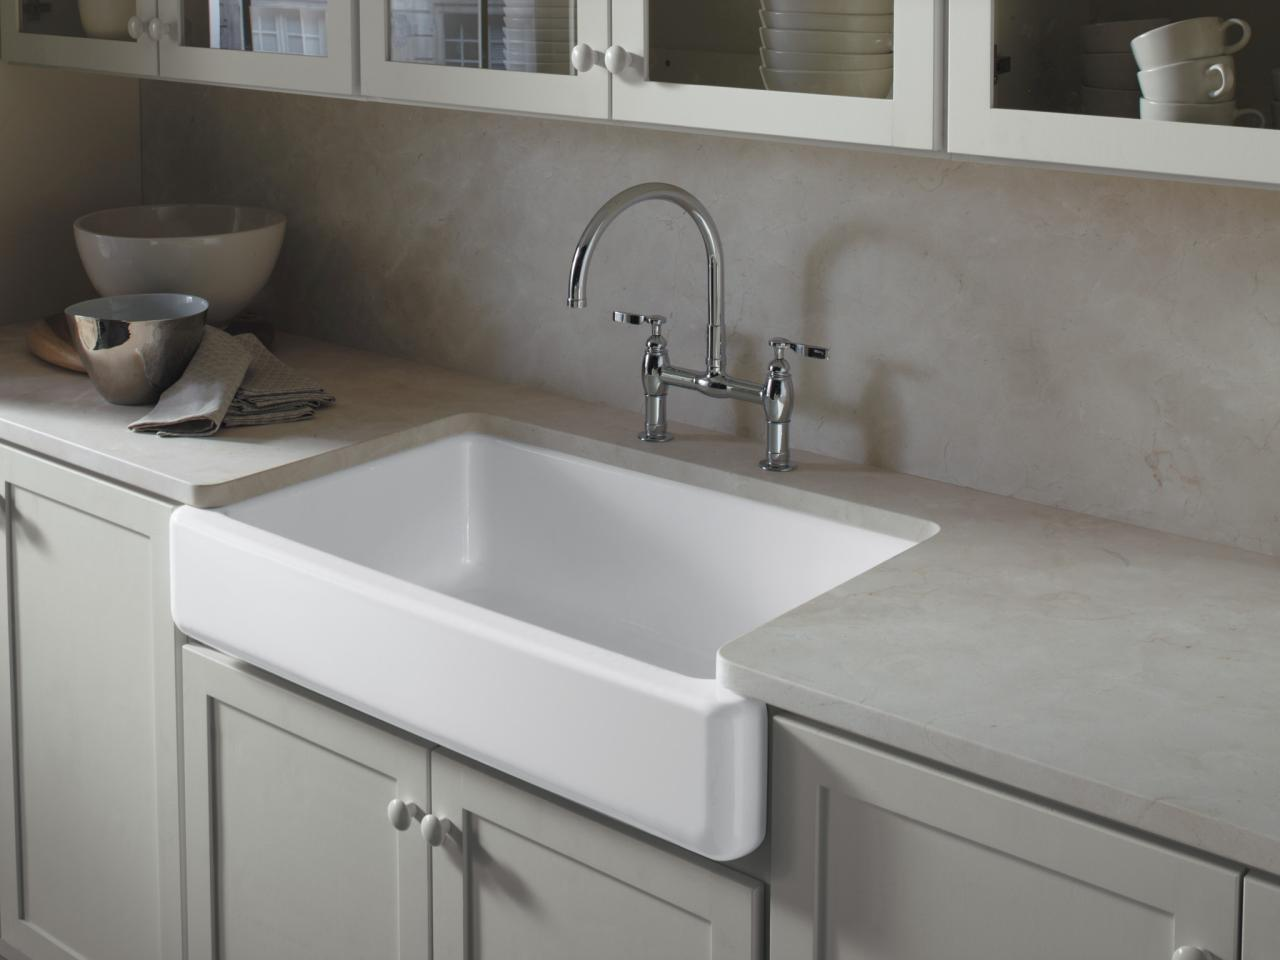 Stunning Kitchen Decoration Ideas Using Cabinet Plus Single Sink and Faucet